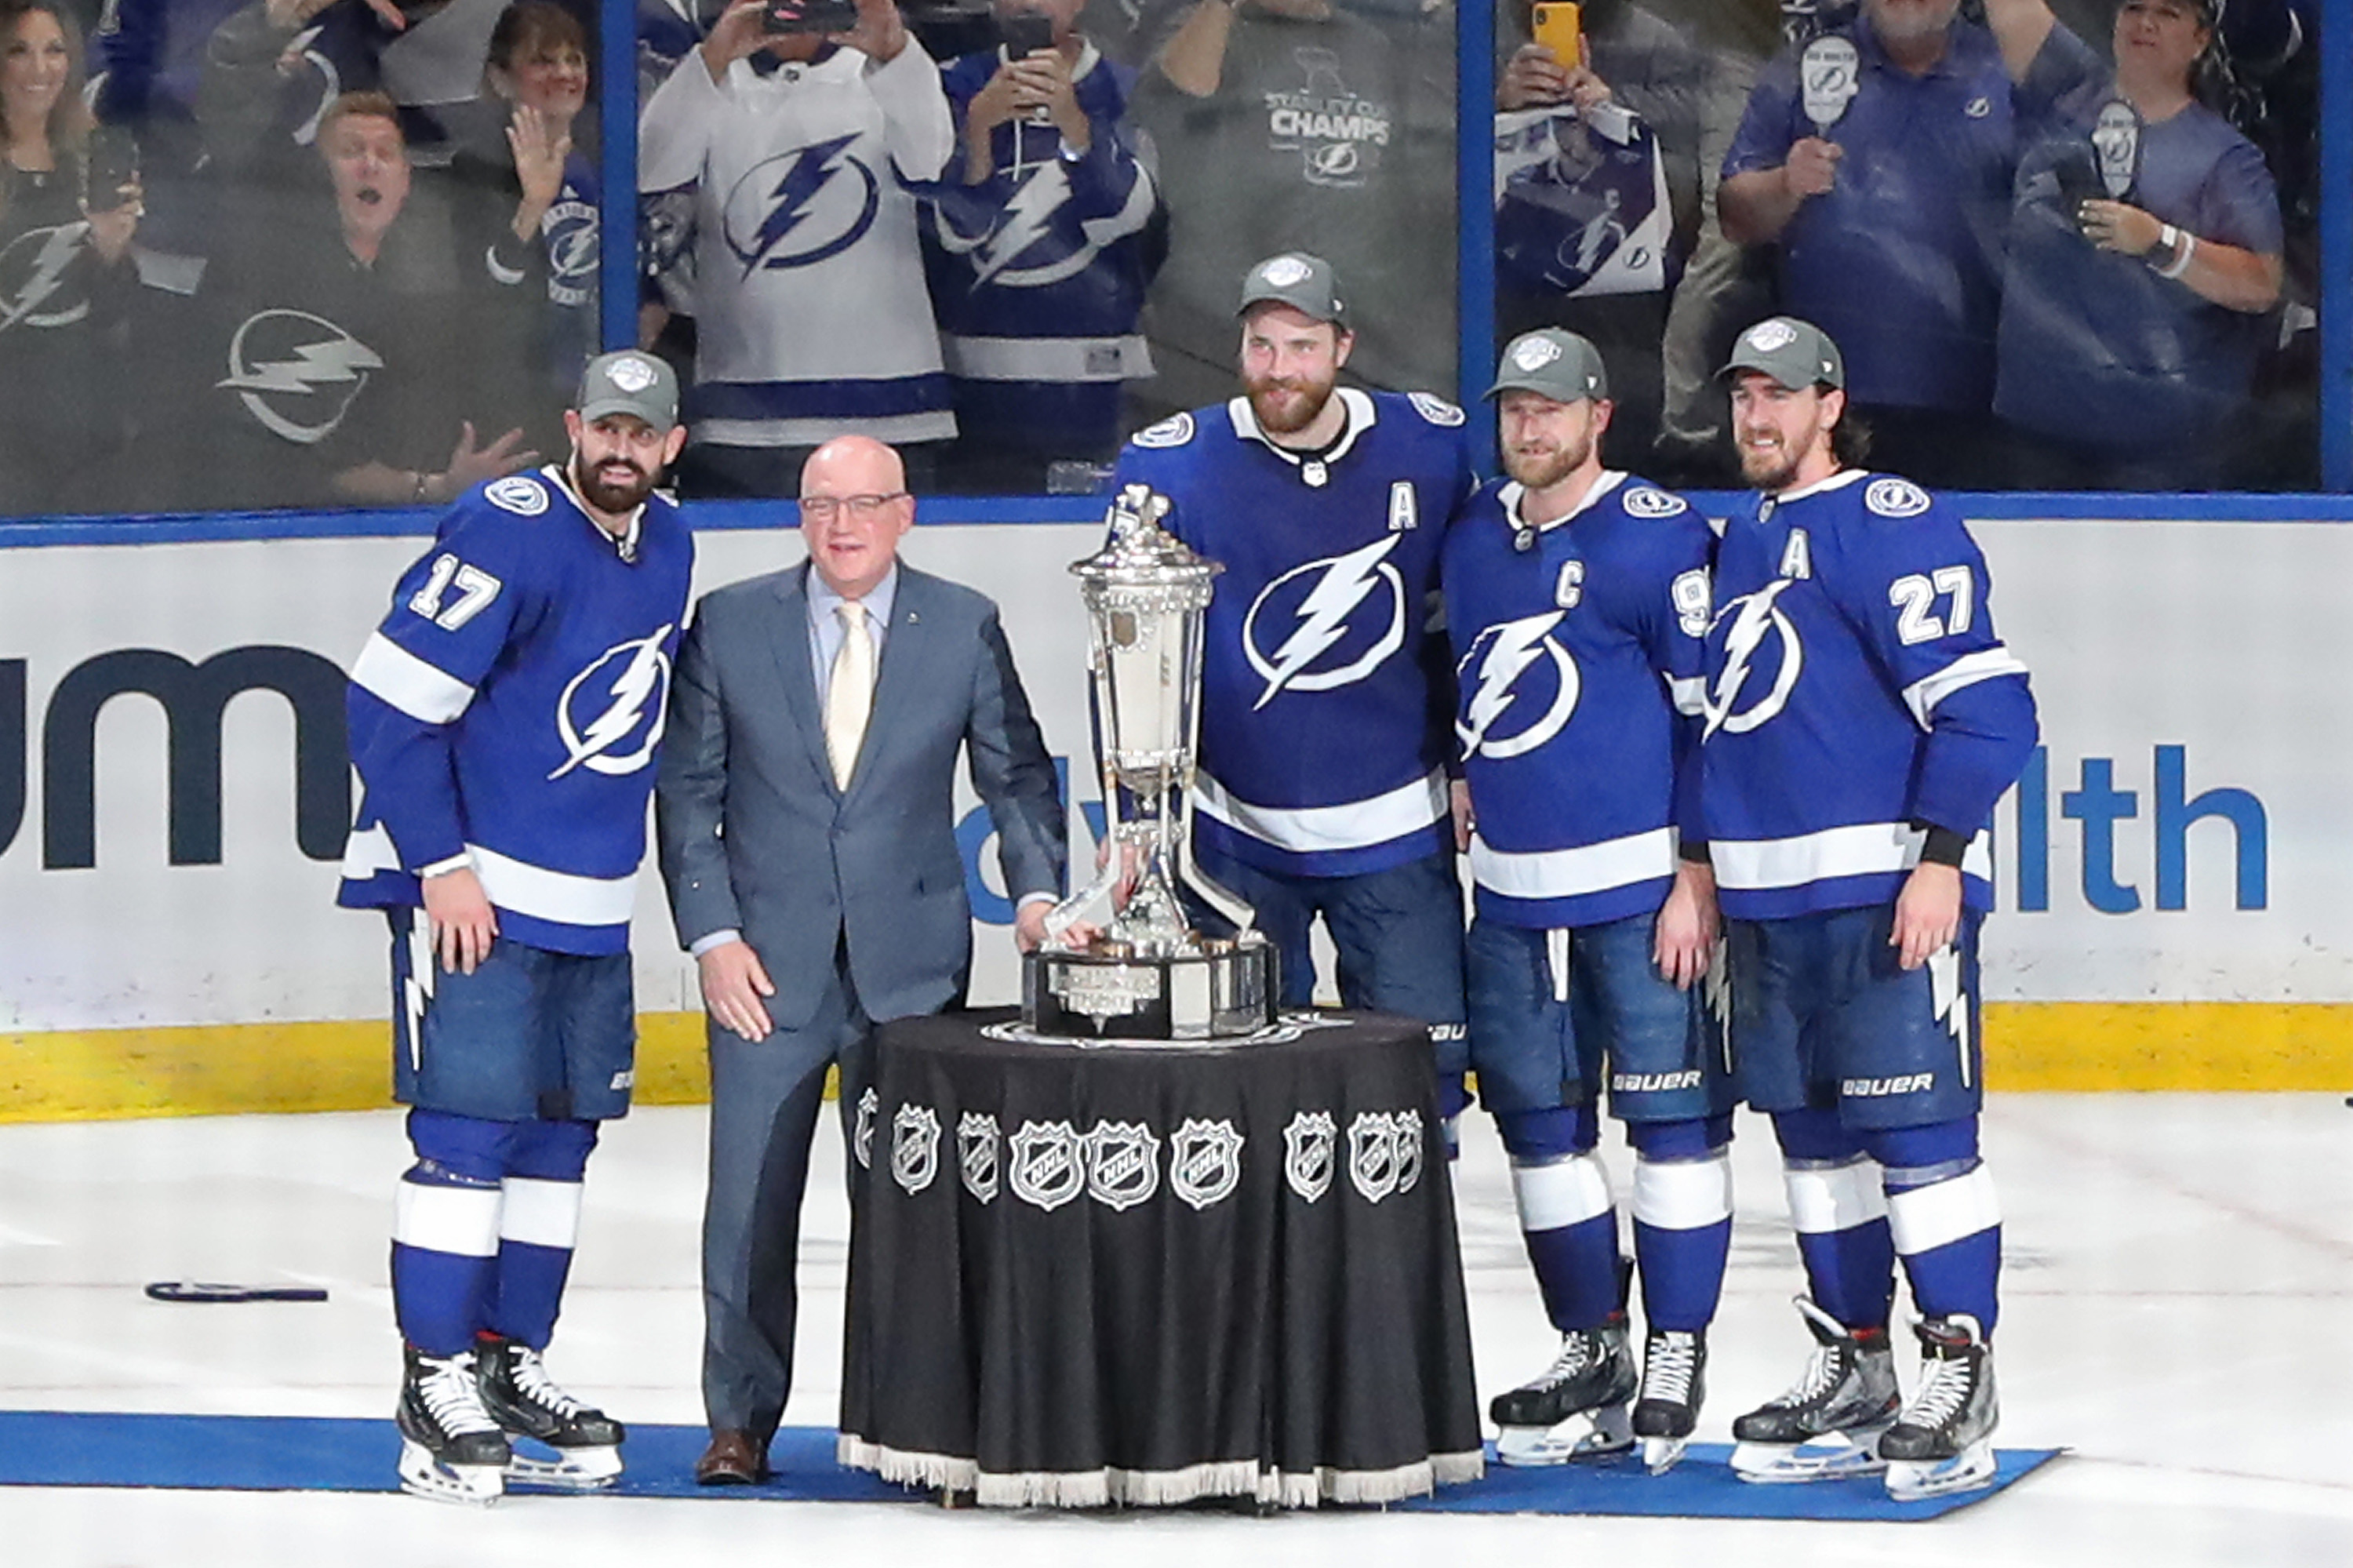 NHL deputy commissioner Bill Daly presents Alex Killorn, Ryan McDonagh, Victor Hedman and Steven Stamkos of the Tampa Bay Lightning with the Prince of Wales Trophy after defeating the New York Islanders 1-0 in Game Seven of the NHL Stanley Cup Semifinals during the 2021 NHL Stanley Cup Finals at Amalie Arena on June 25, 2021 in Tampa, Florida.